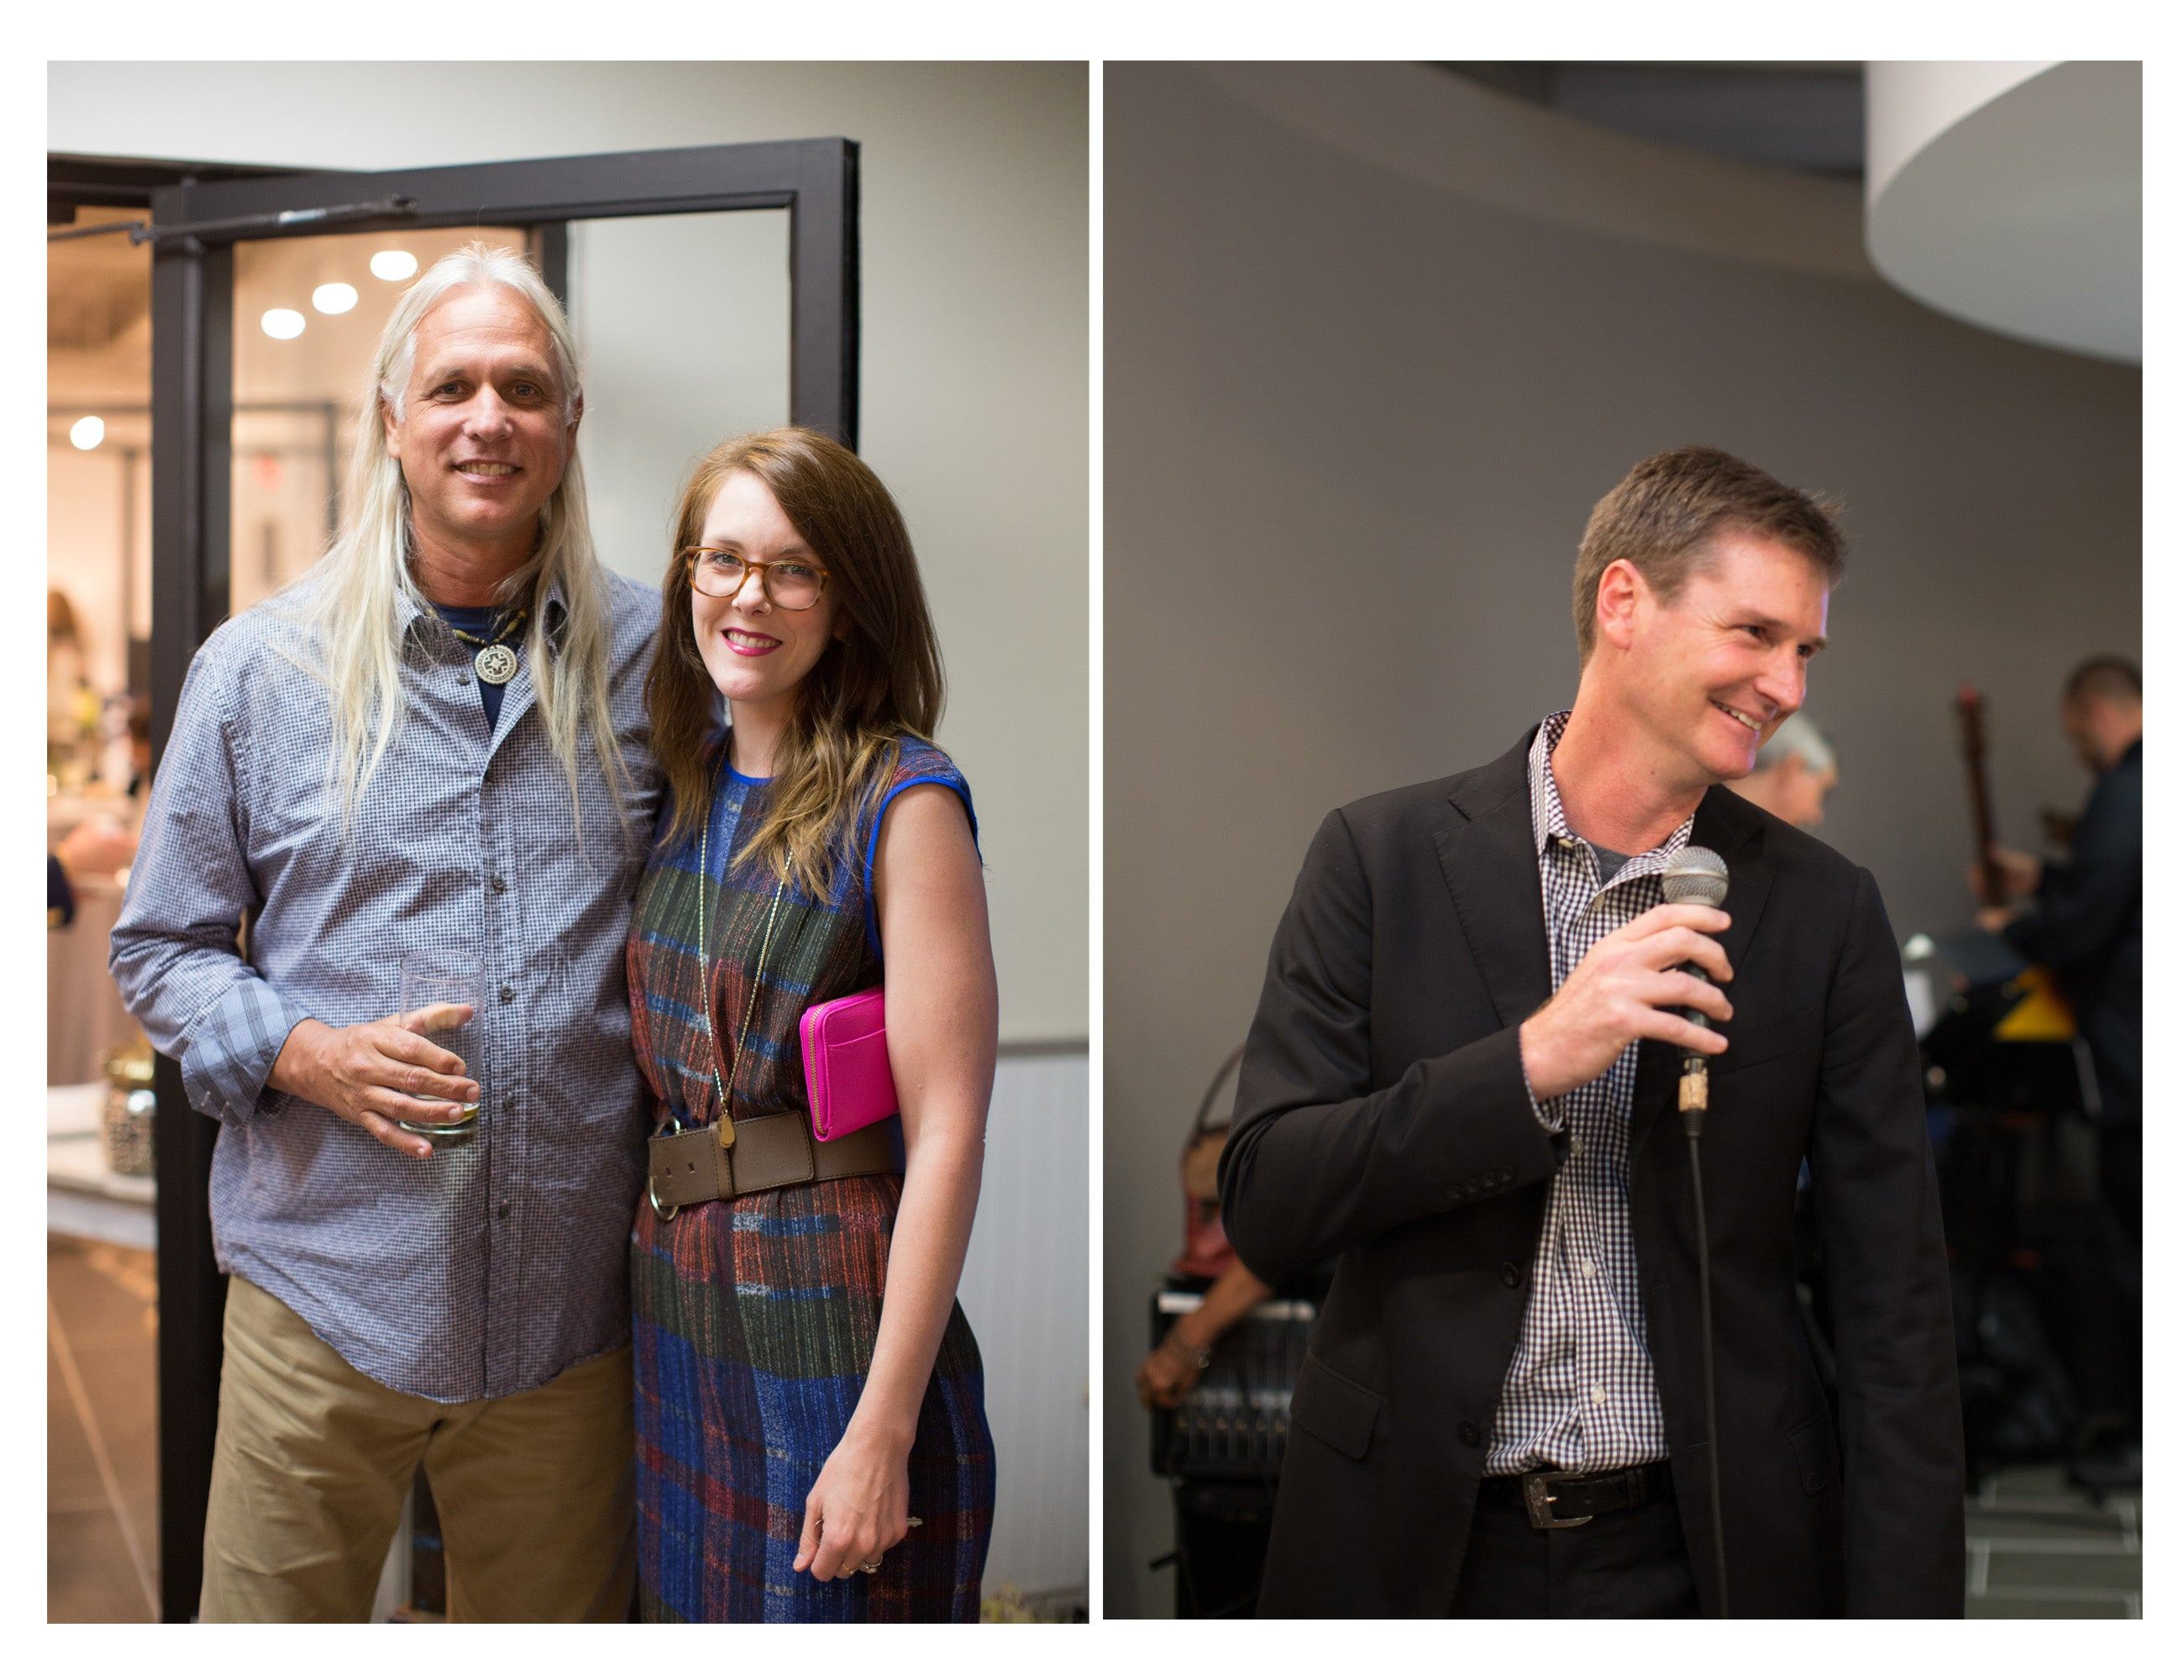 Guests (left) and Jason Needleman (right) at the Peacock Alley Nashville Opening